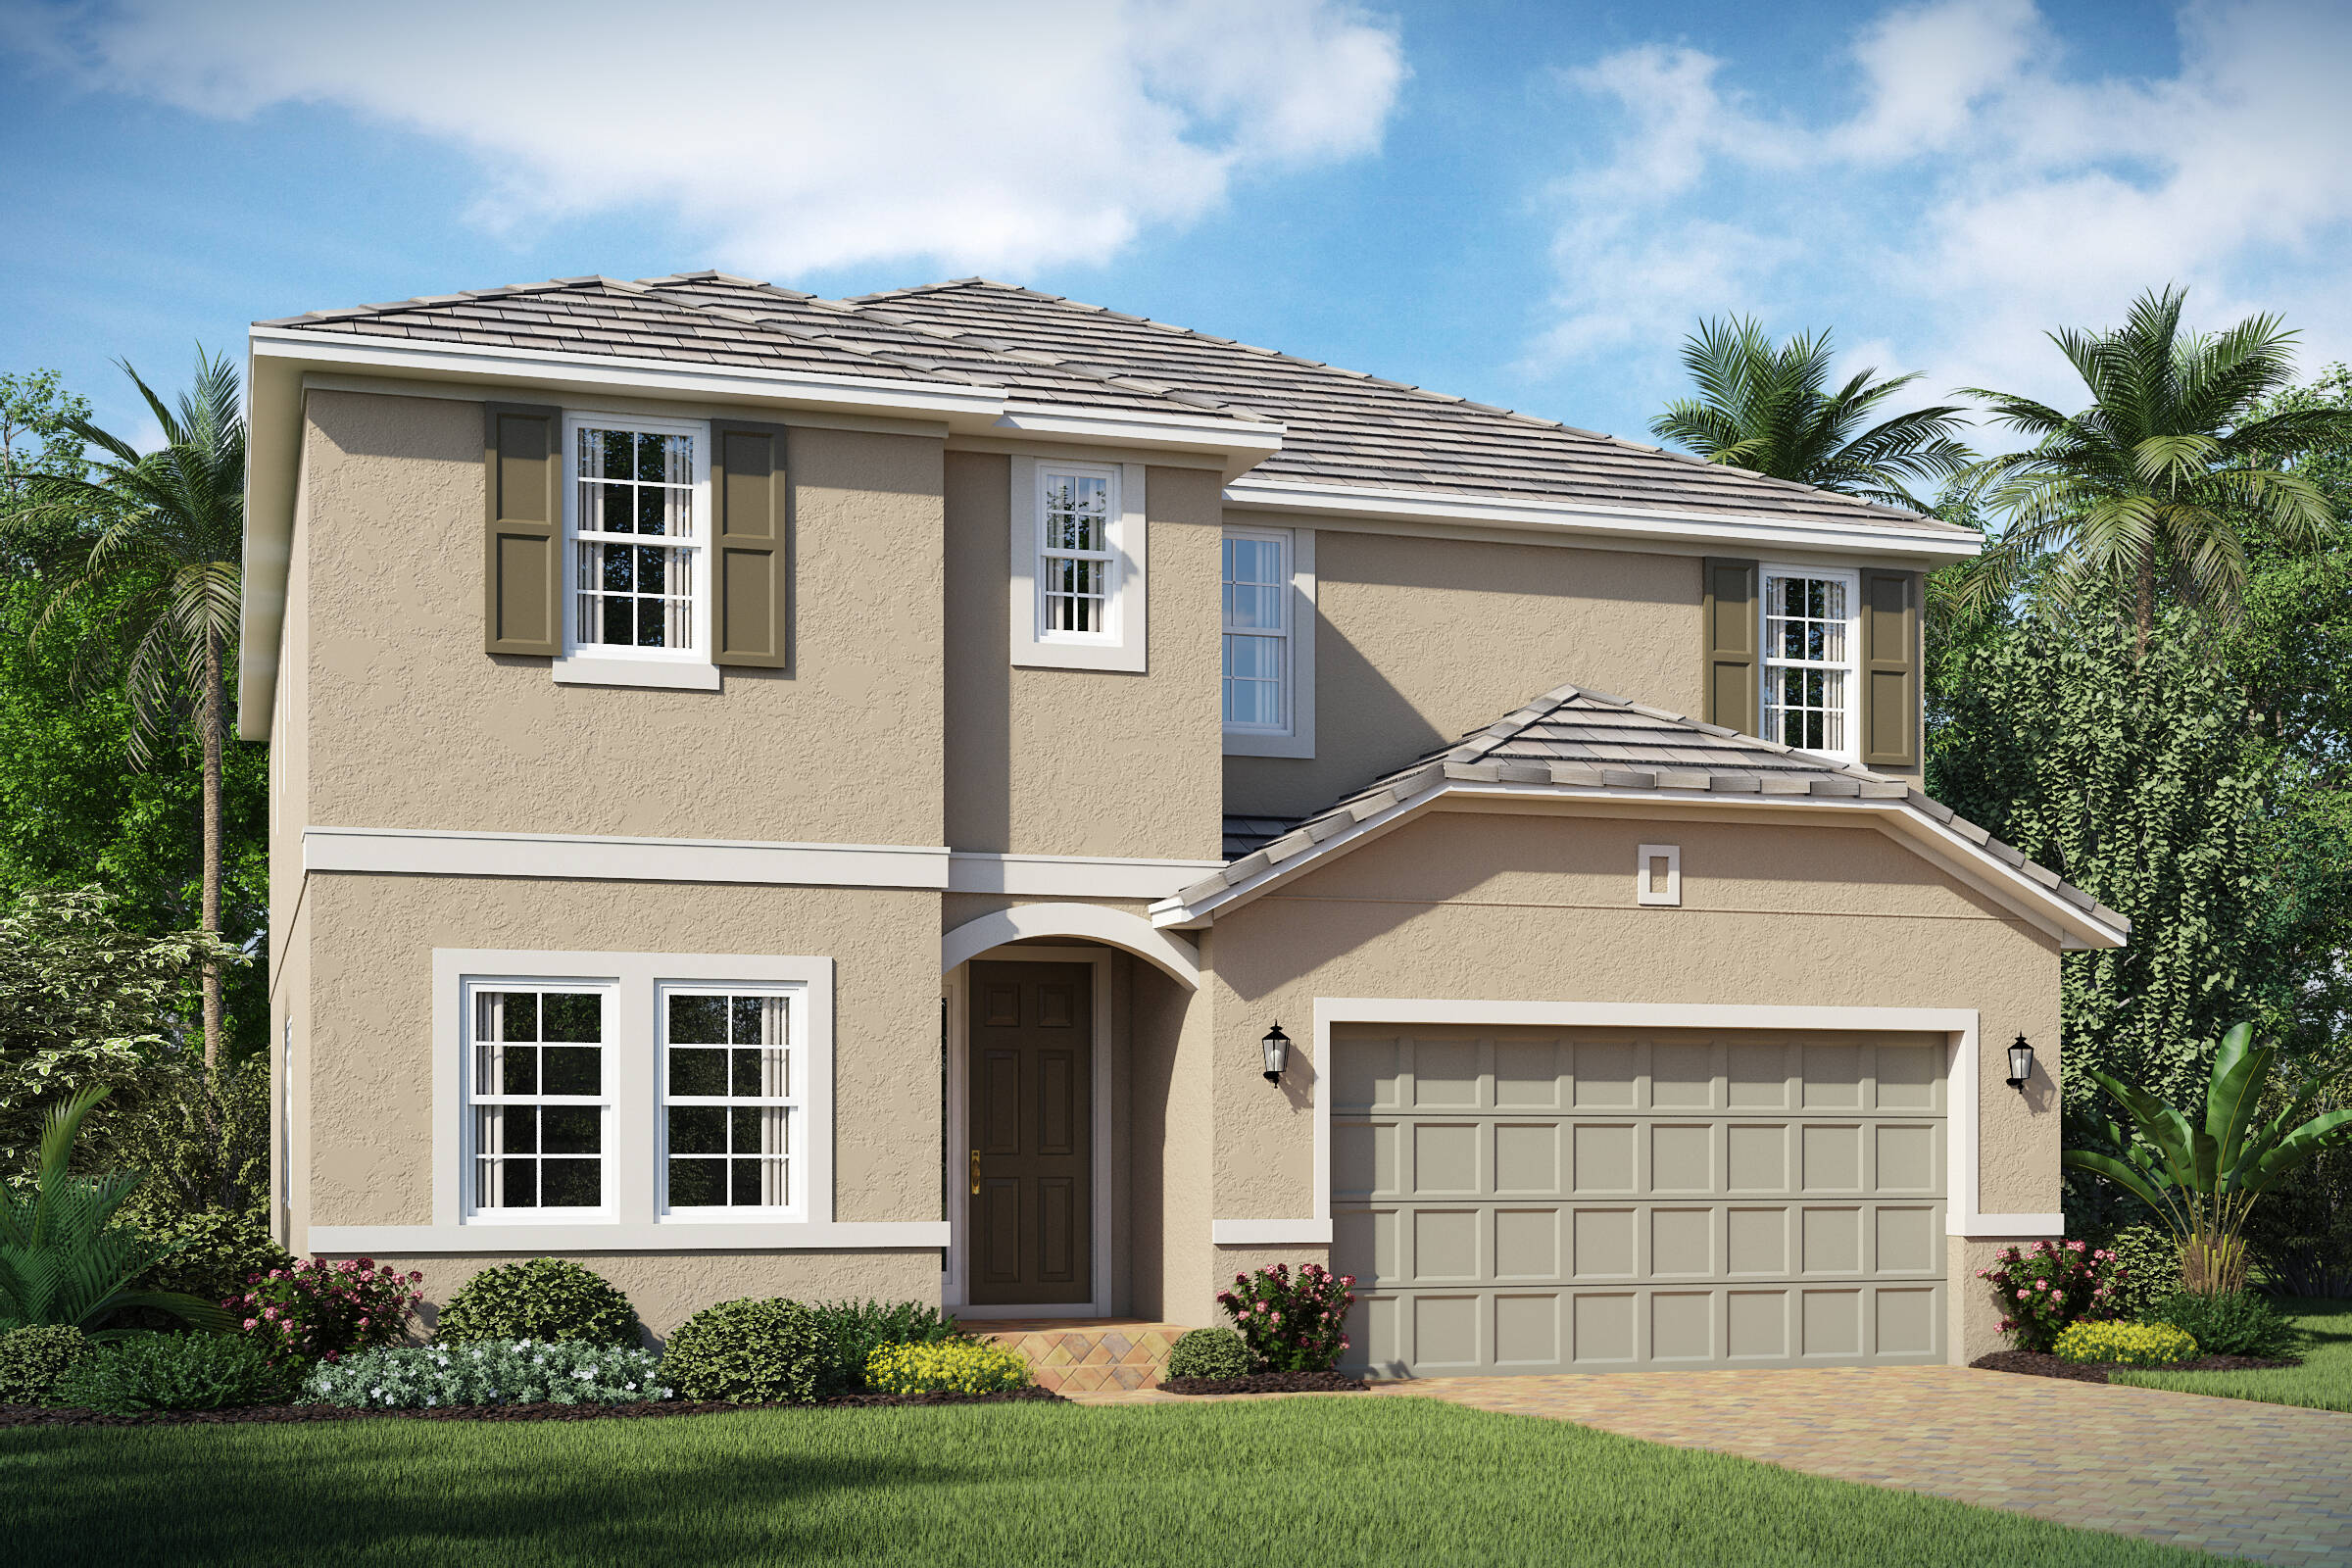 Michelson A exterior lake florence preserve new homes in orlando florida